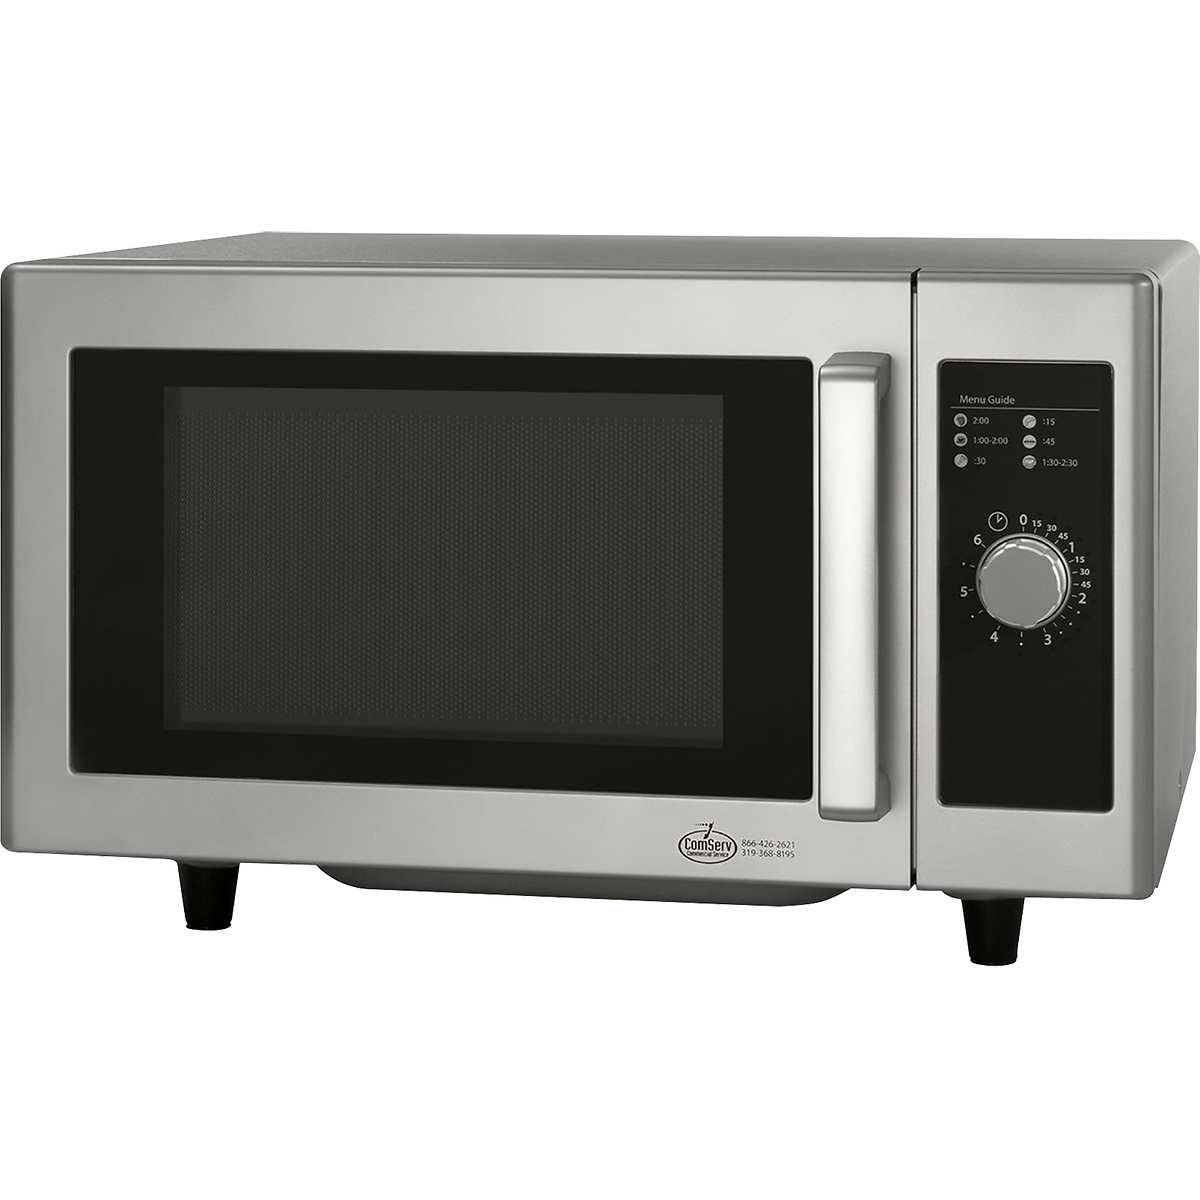 Product Top Click To Zoom Manufacturer S Specifications Email Sent Member Only Item Amana Commercial Microwave